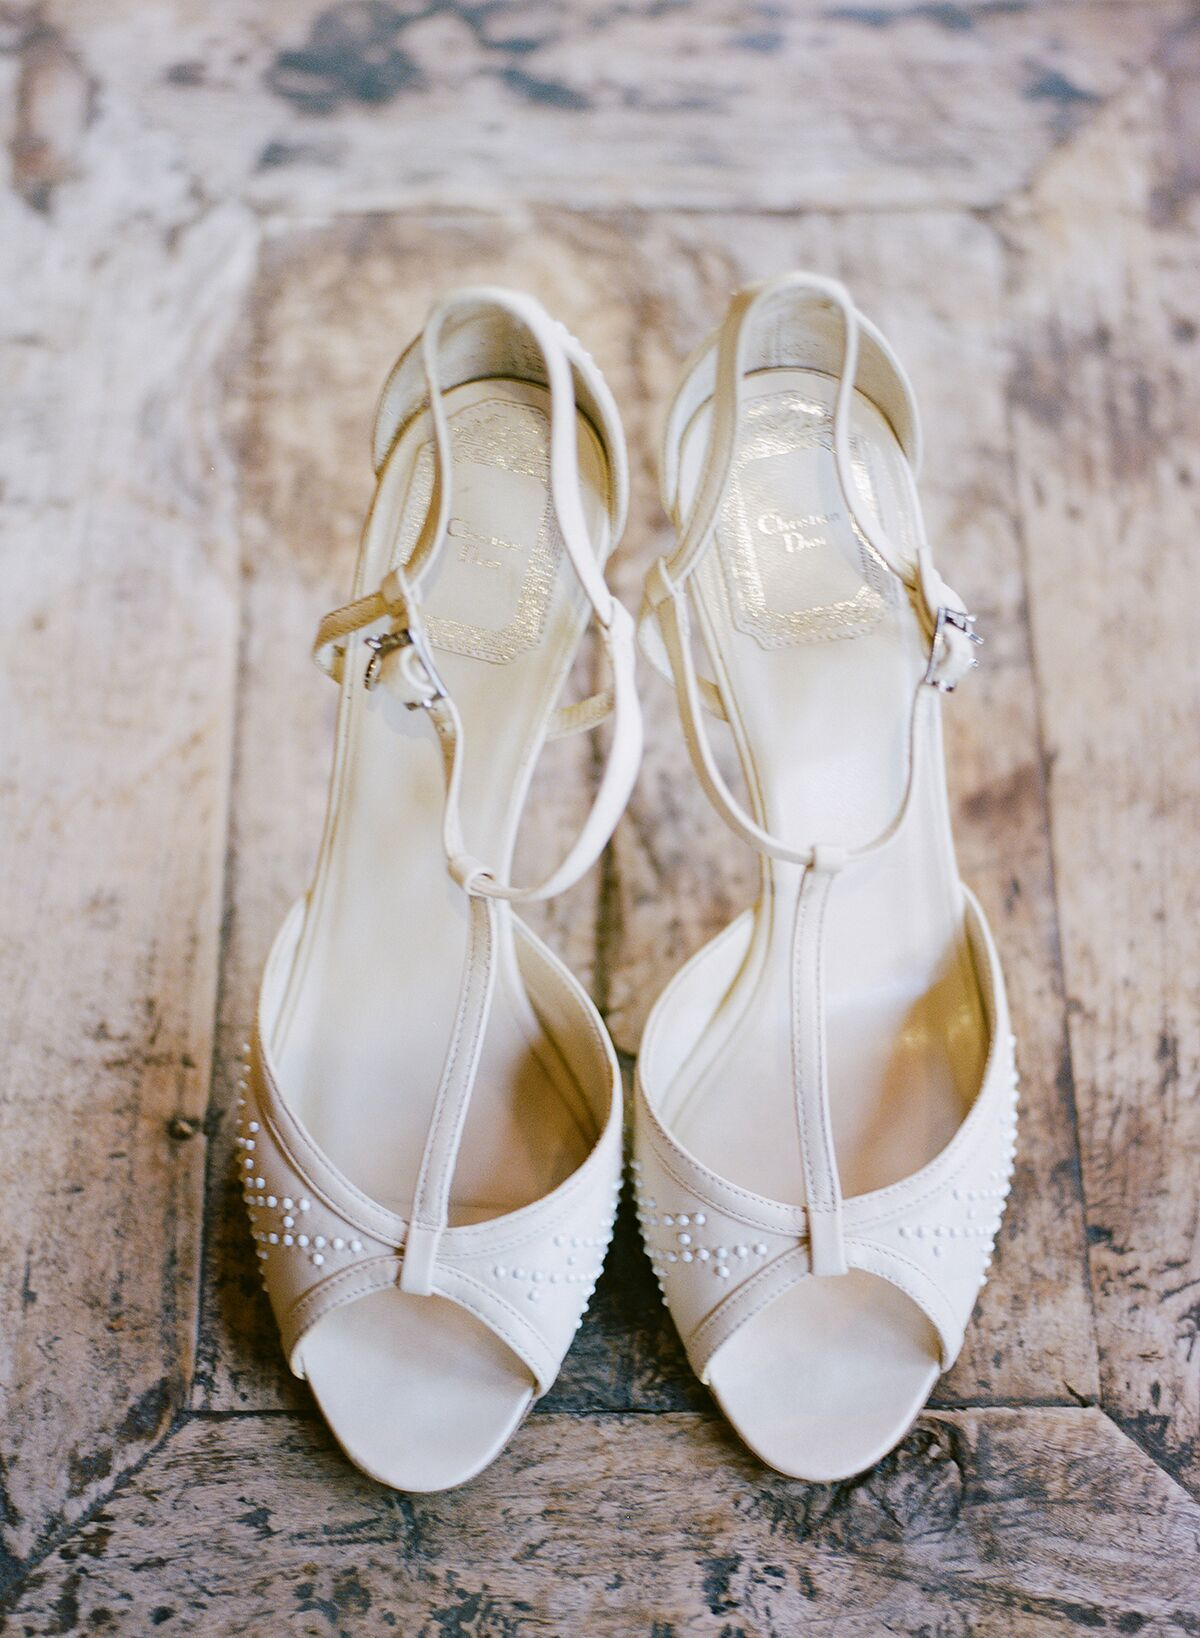 All white wedding heels at Flagler Museum in Palm Beach